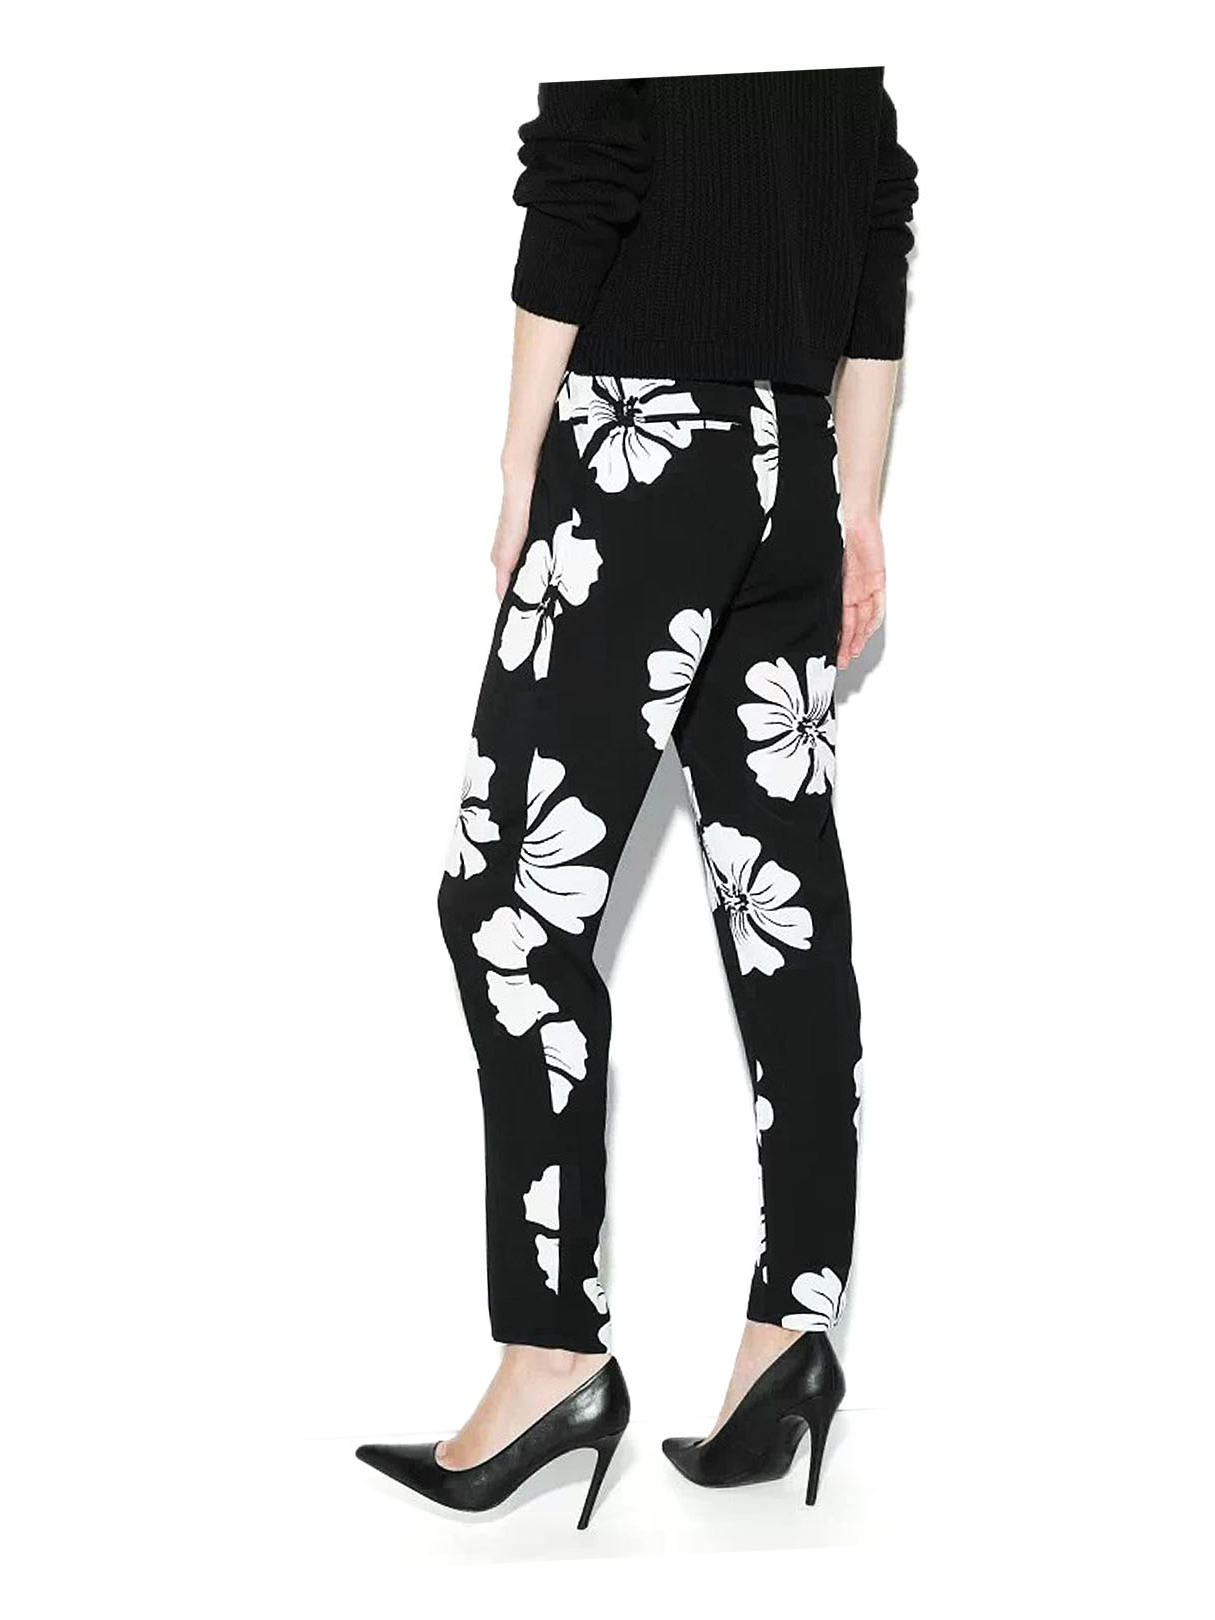 Black Trousers with White Floral Print от Yoins.com INT